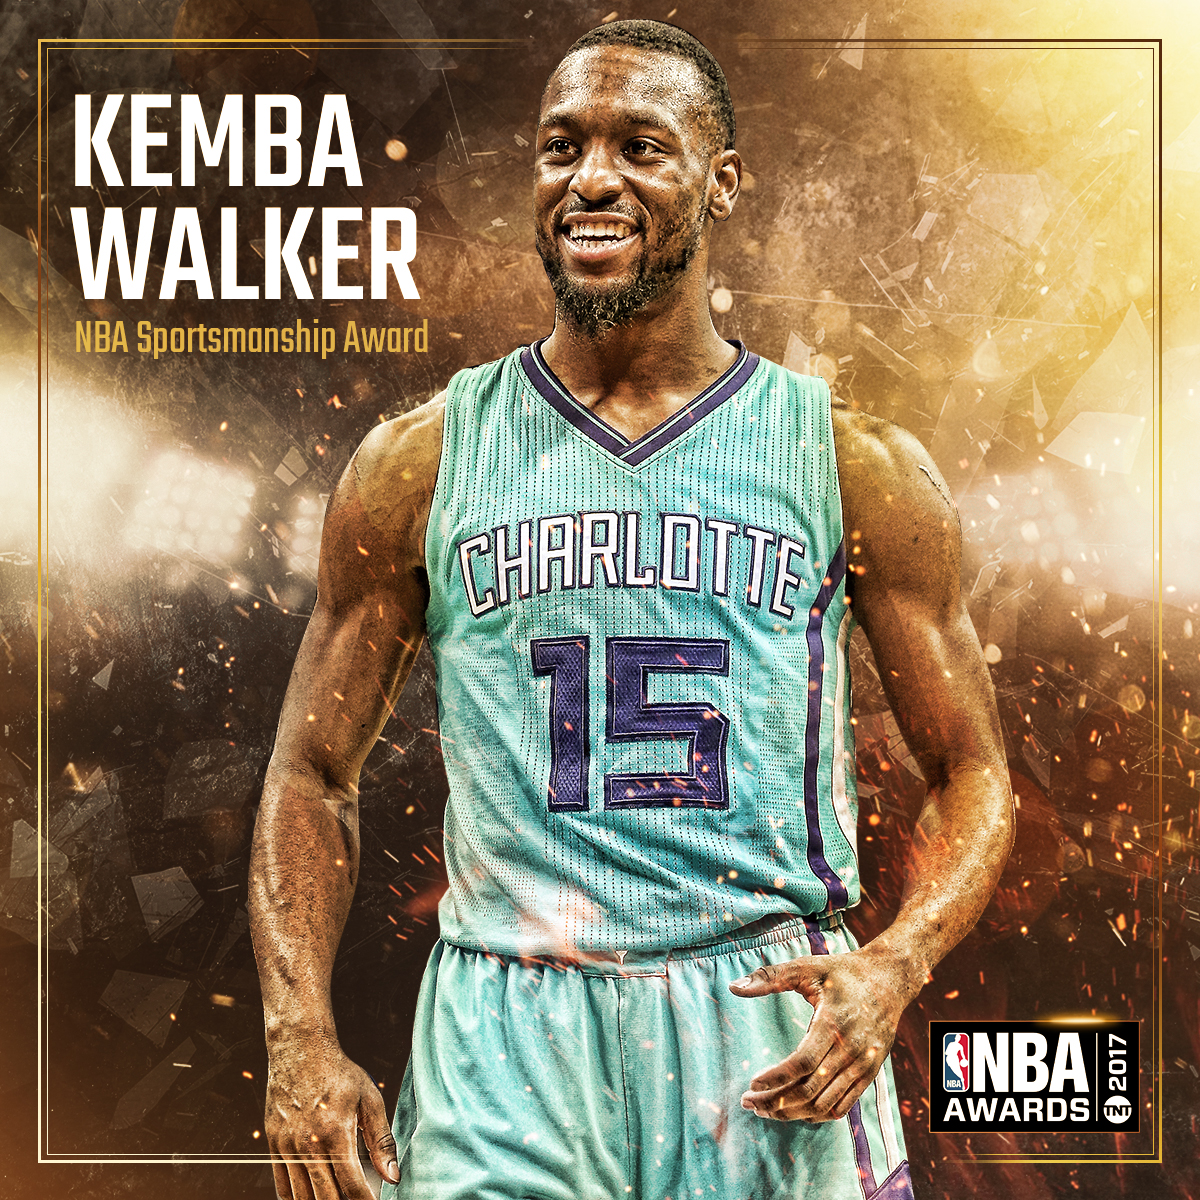 2017 NBA AWARDS - NBA SPORTSMANSHIP AWARD Kemba Walker